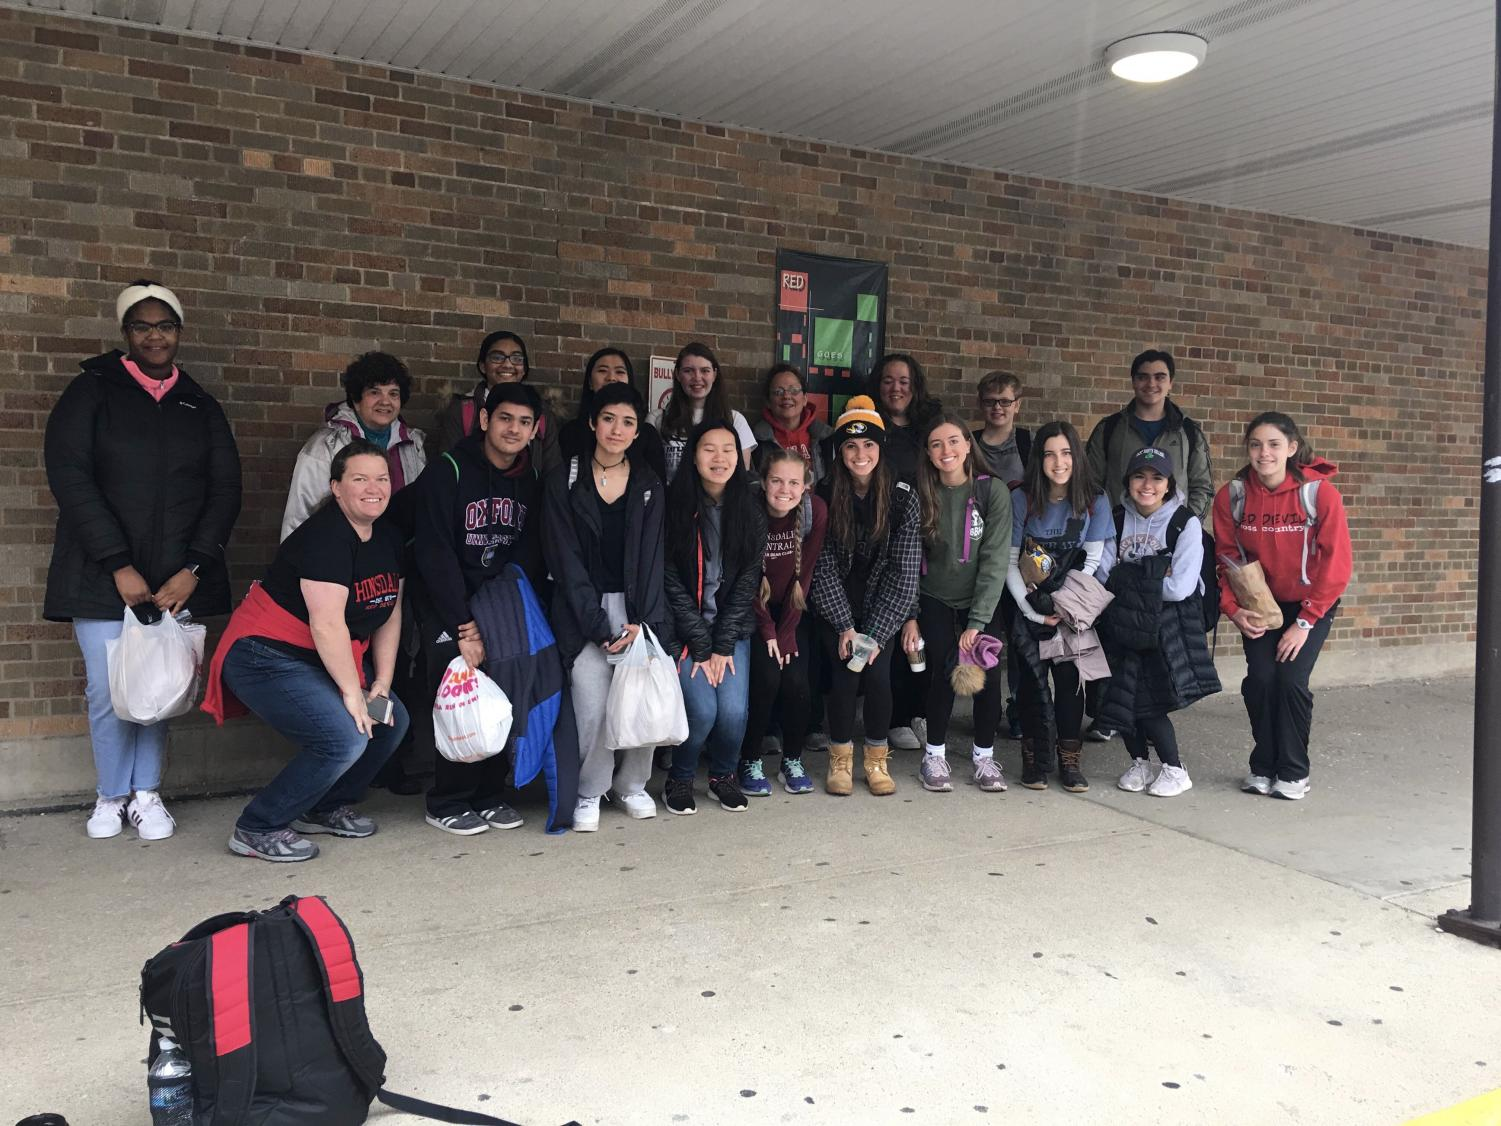 On Saturday,  May 4 Let's Help Out club members packed brown bags with necessities such as food, socks, and toothbrushes, and delivered them to the homeless of Chicago.